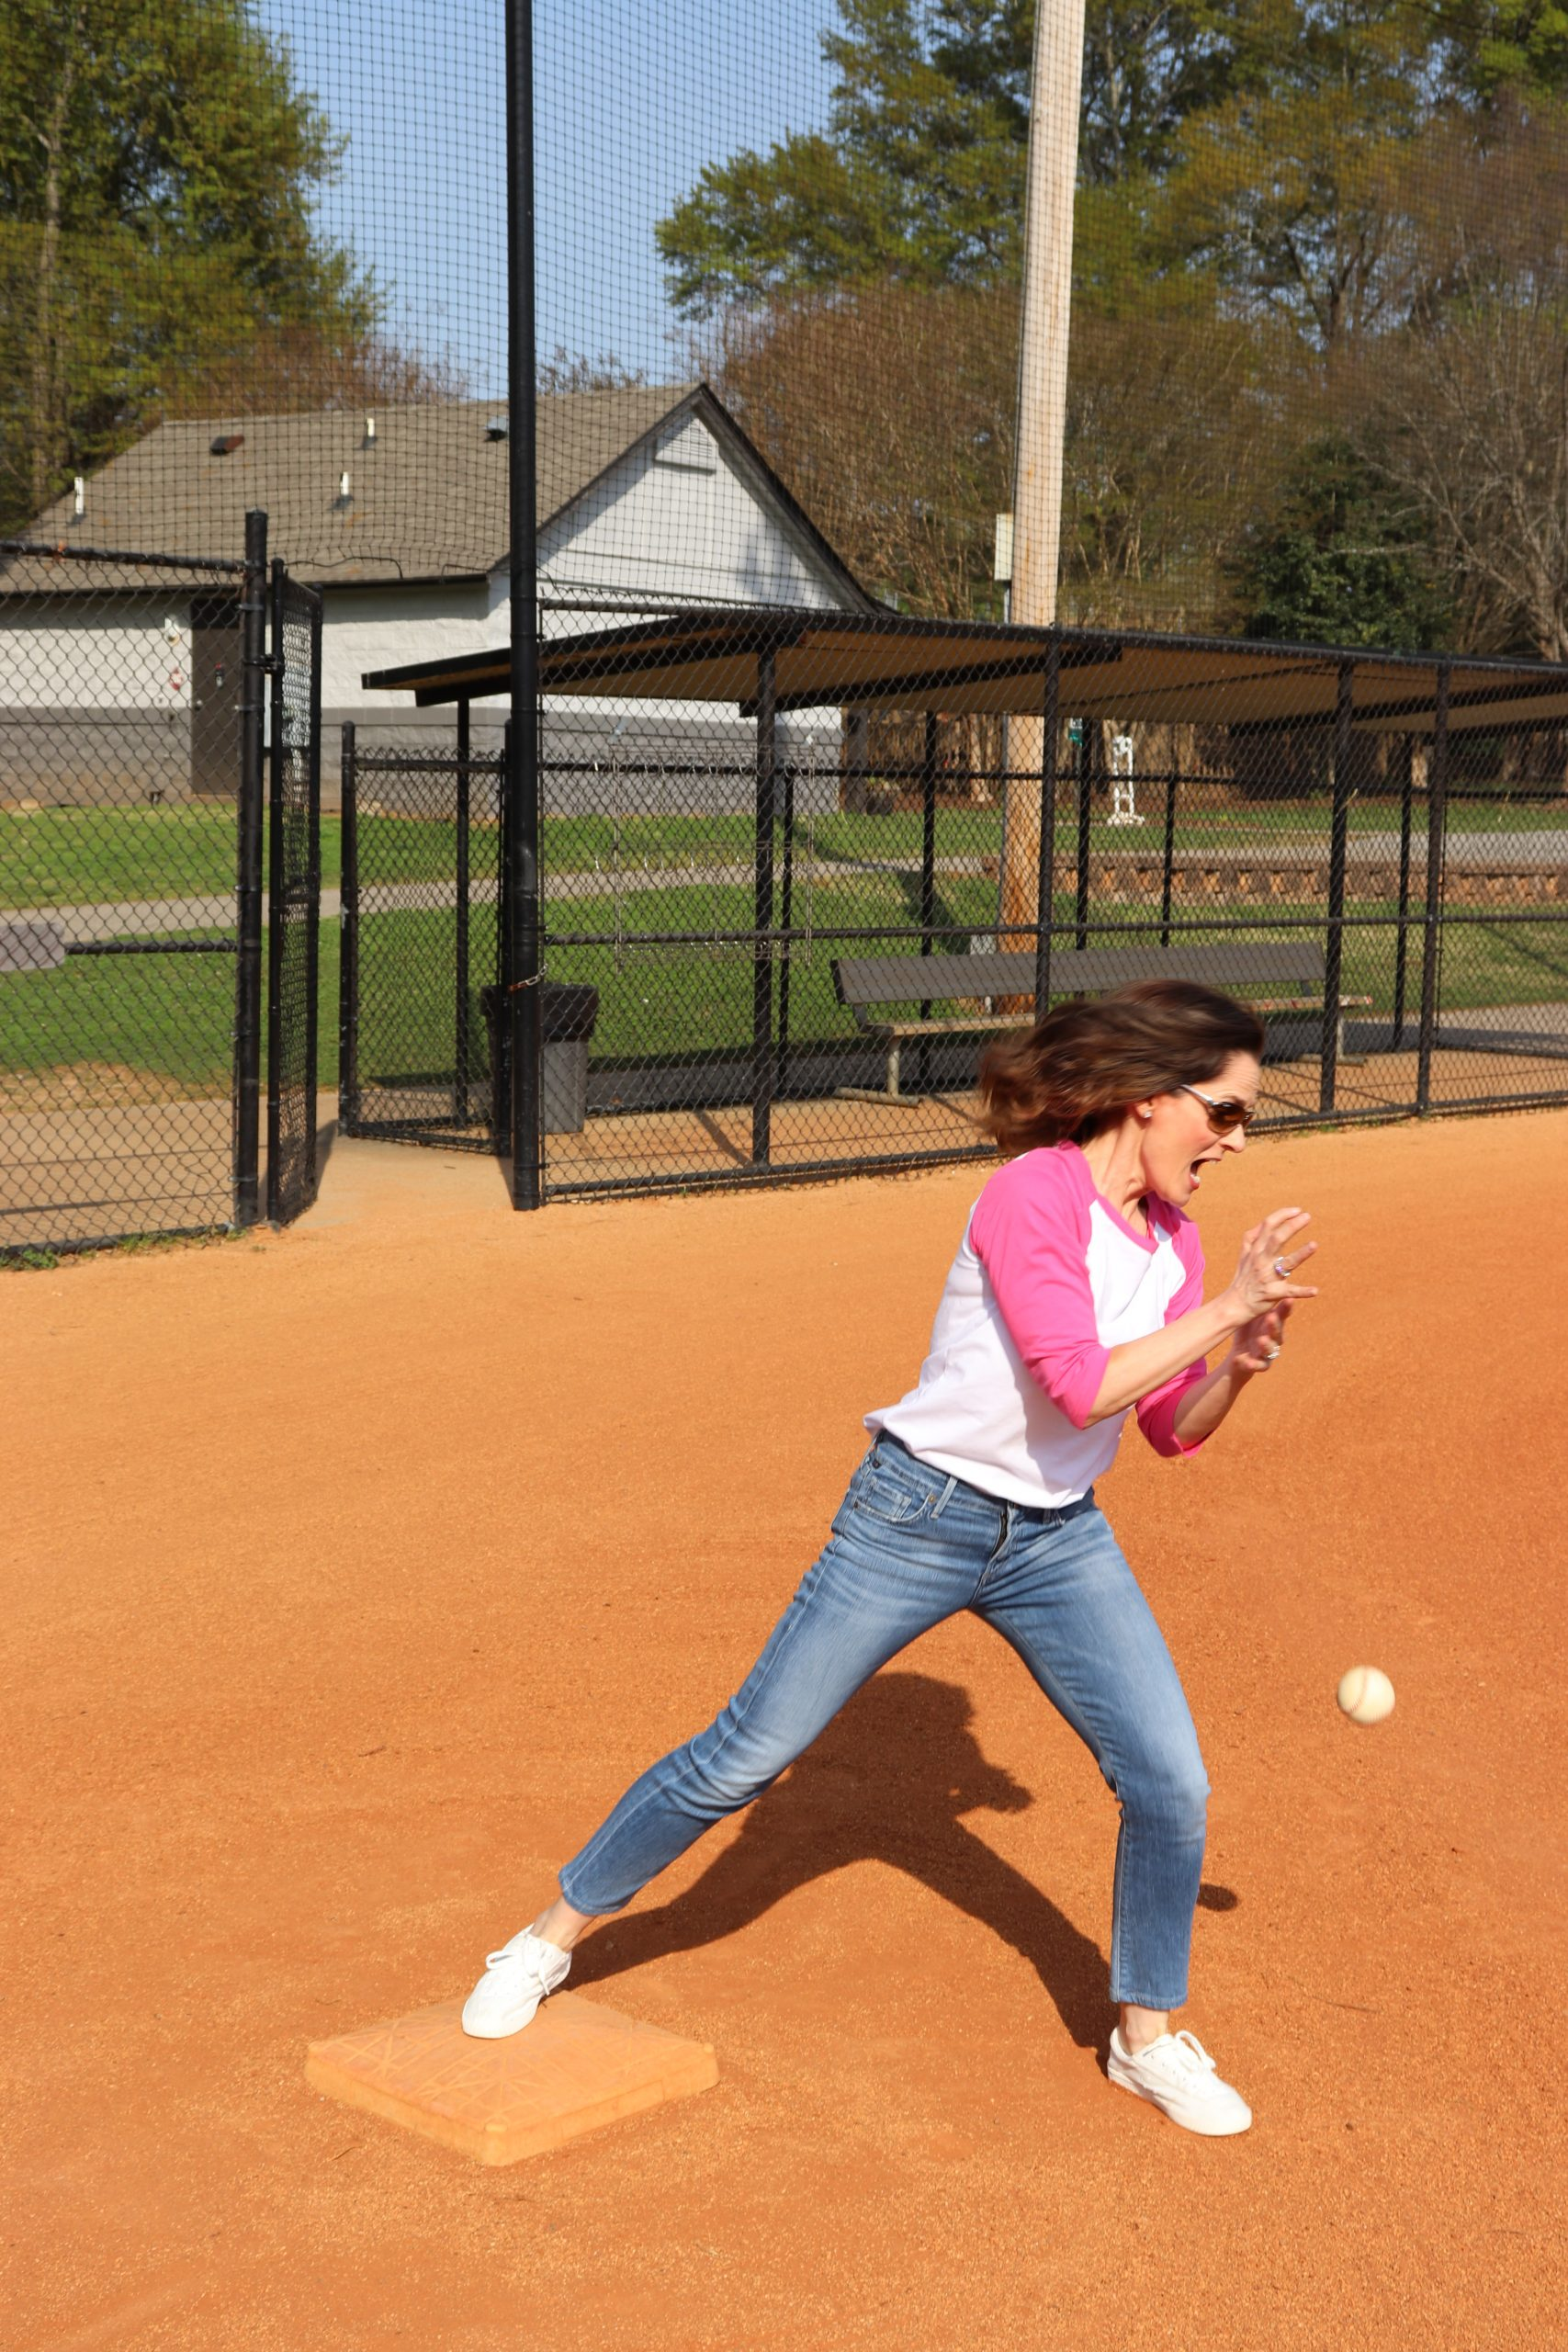 woman over 50 standing on a baseball field trying to catch a curveball